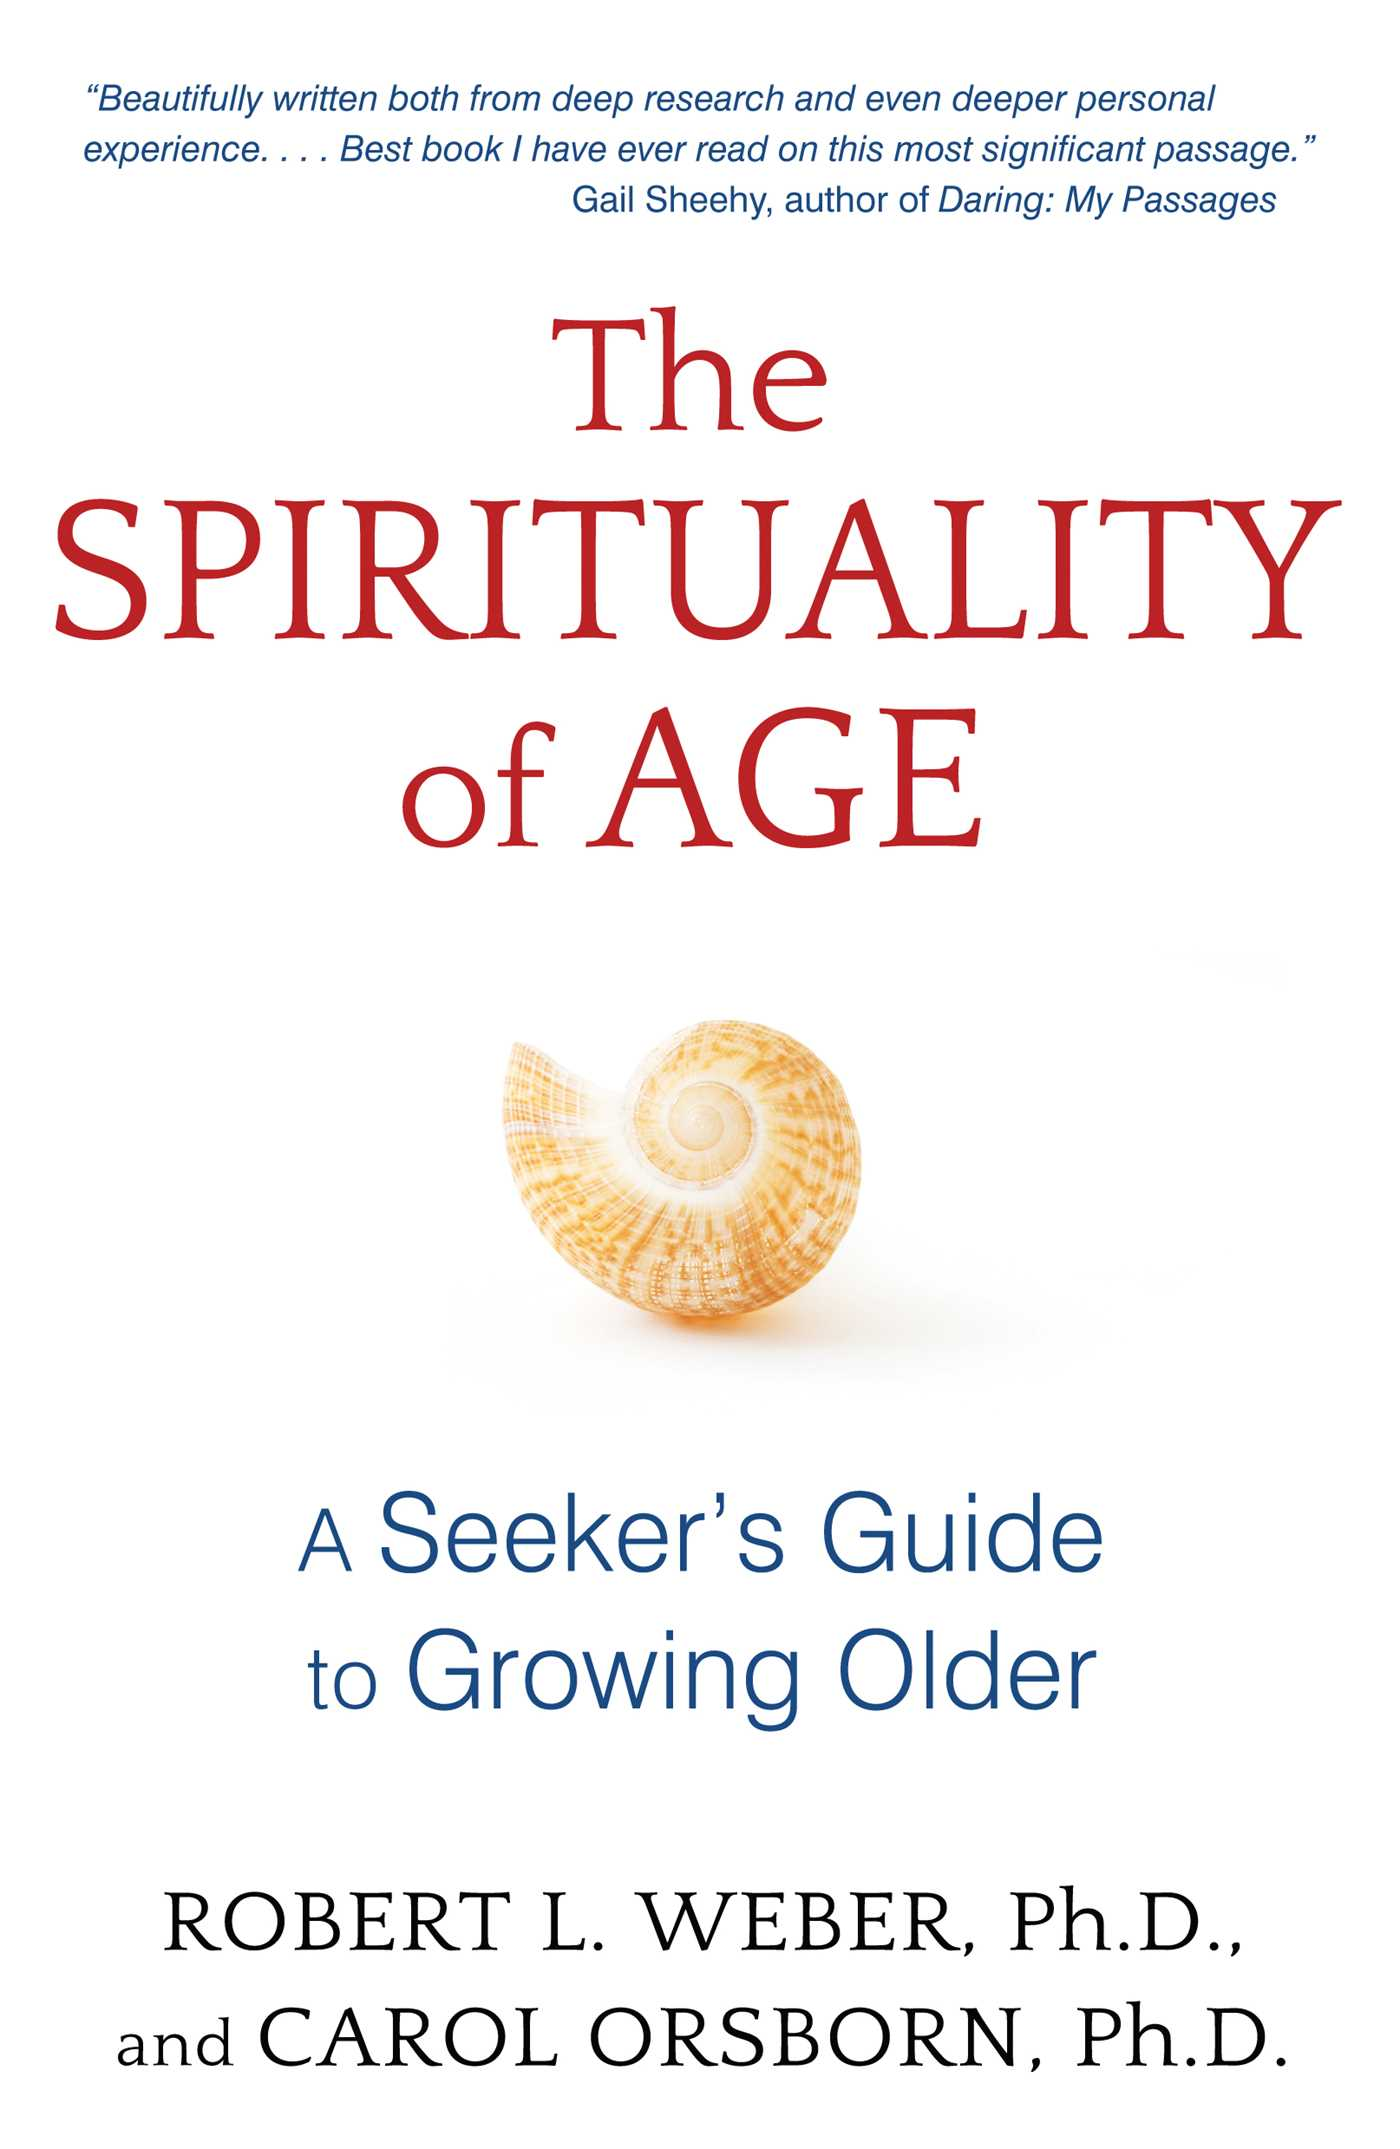 The spirituality of age 9781620555125 hr